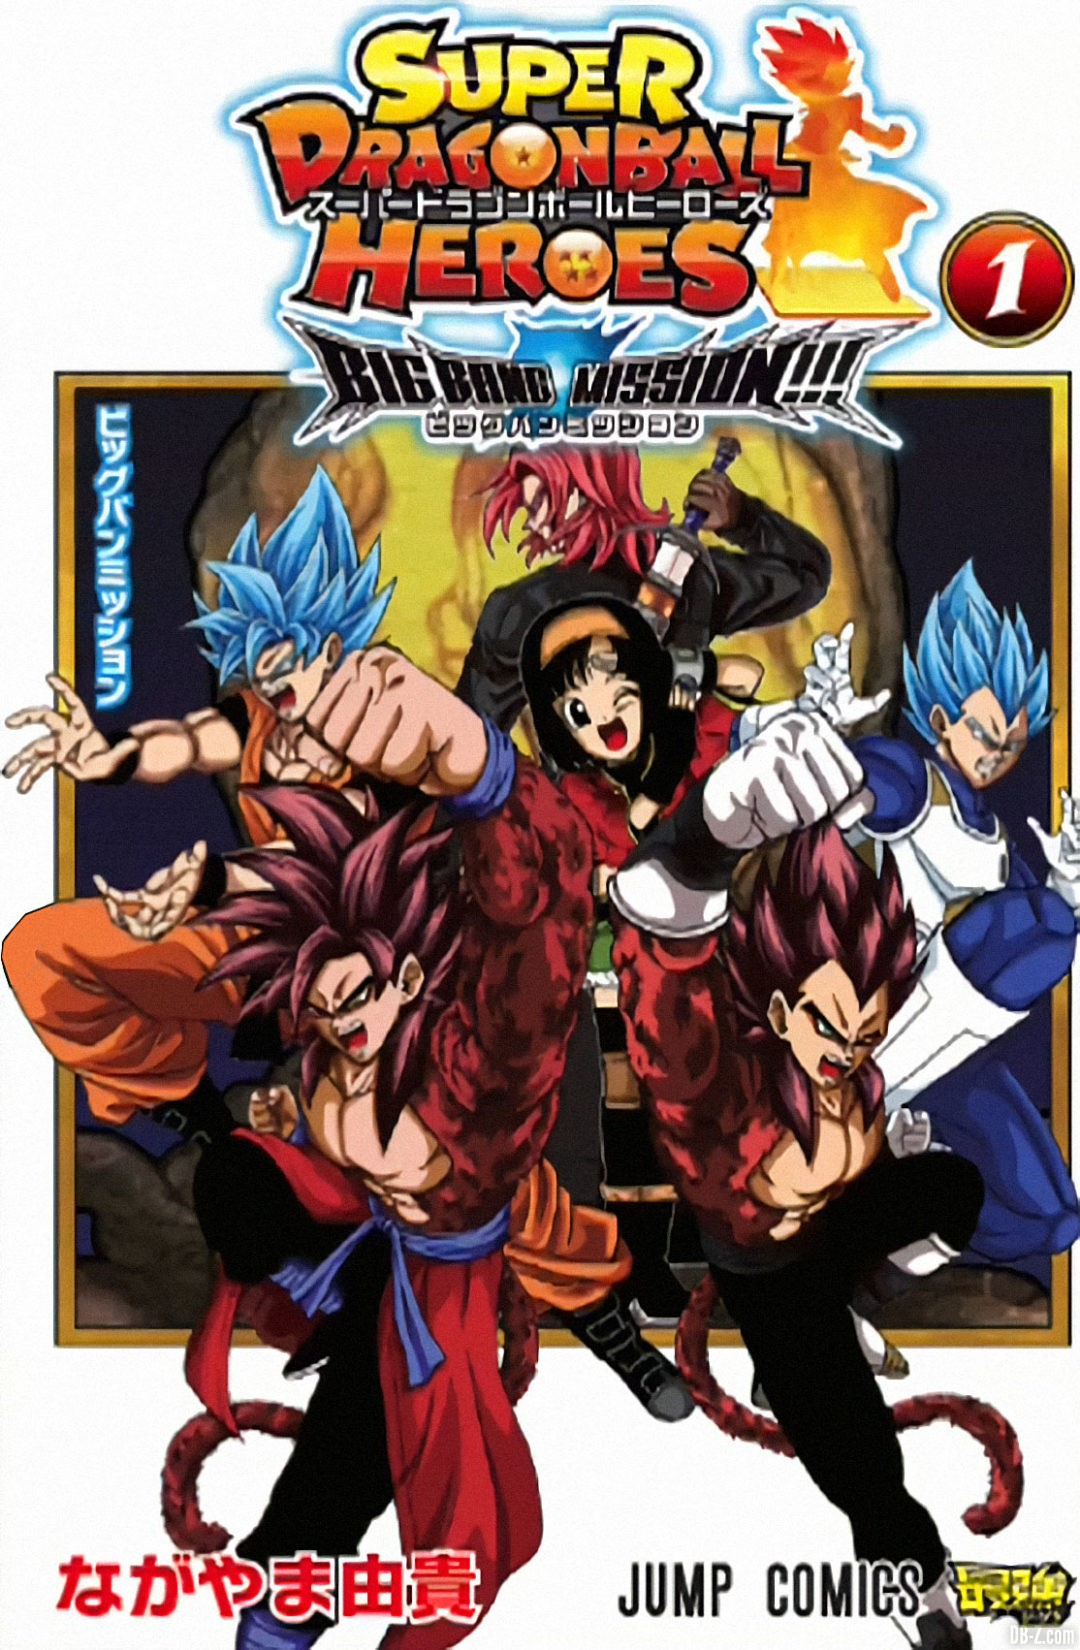 Manga Super Dragon Ball Heroes Big Bang Mission 1